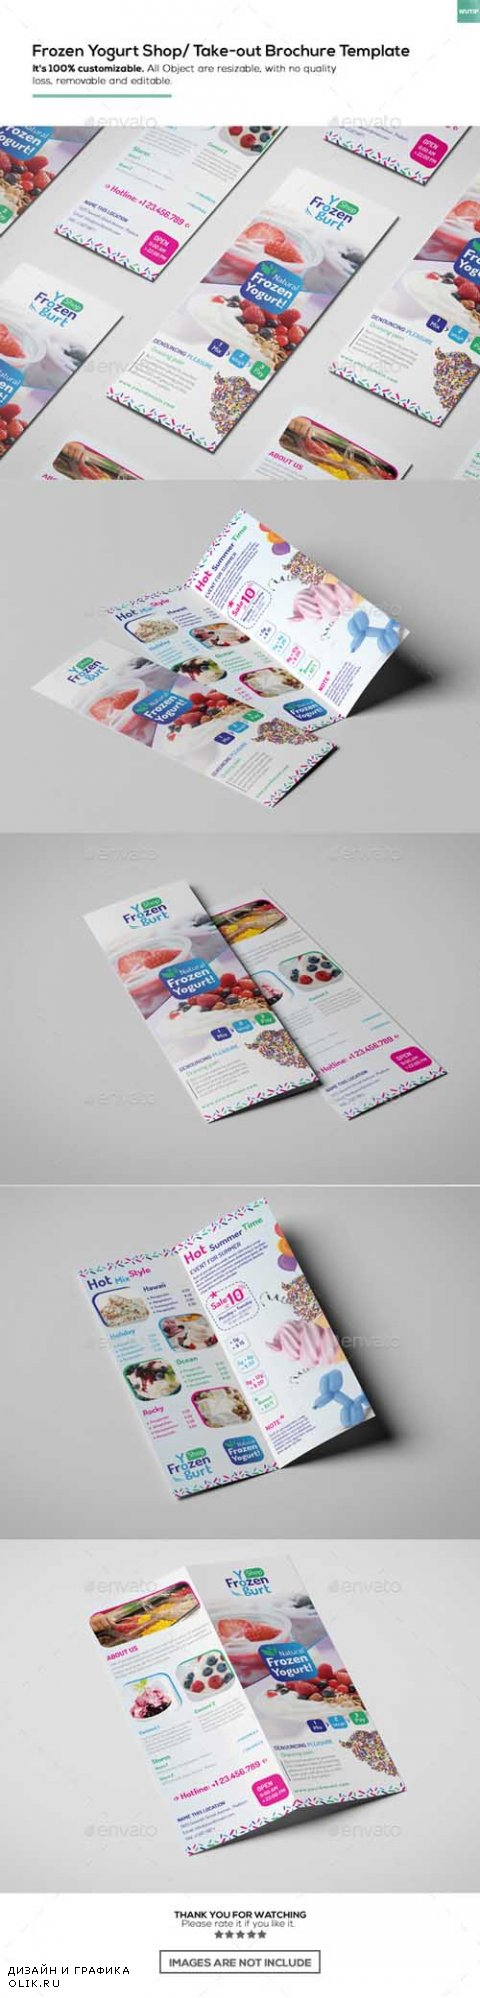 Frozen Yogurt Shop/ Take-out Brochure Template 16455695